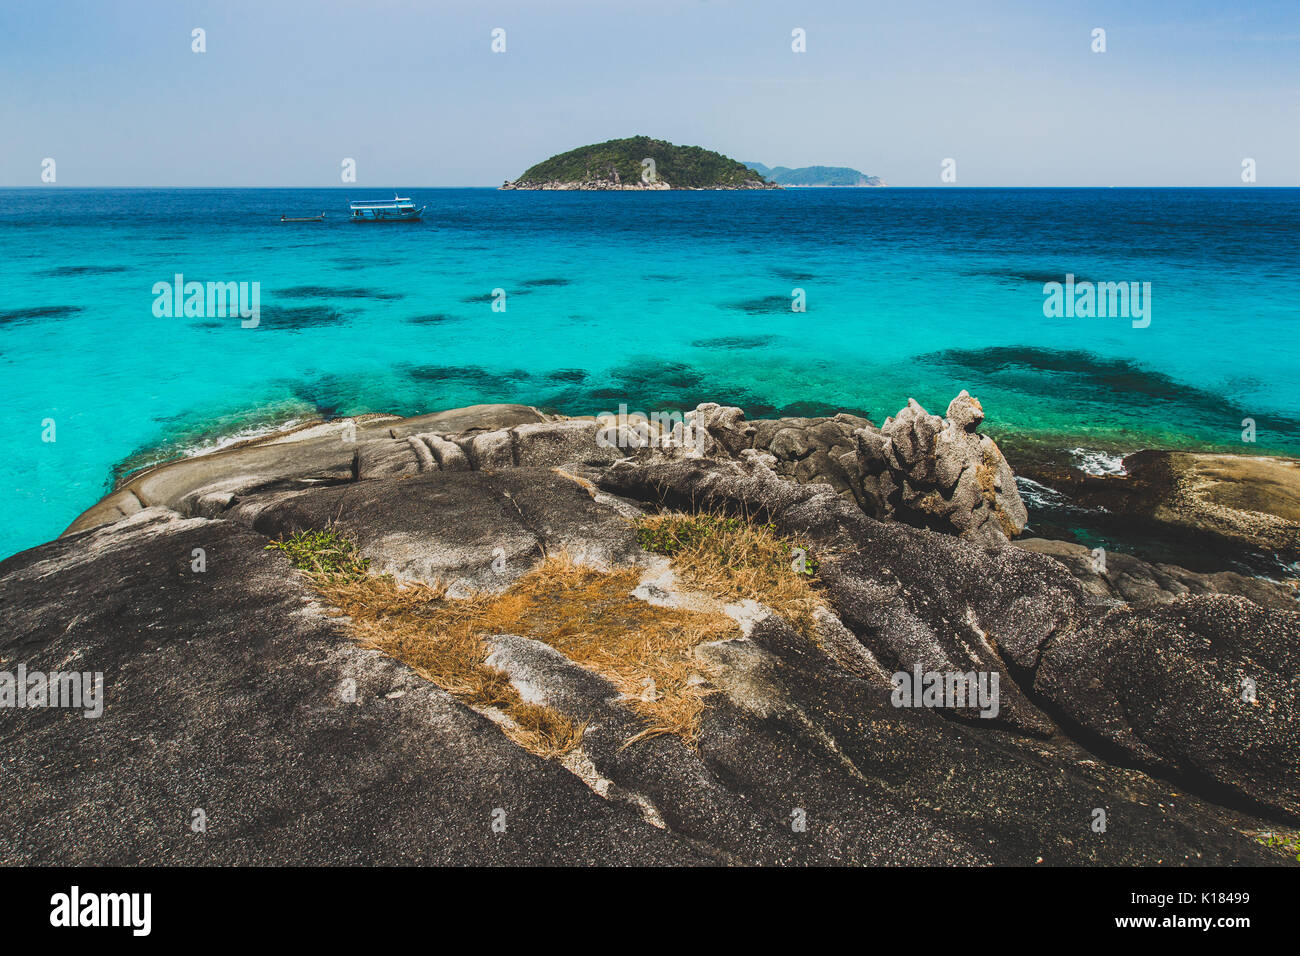 Sea bay with clear emerald water. Idyllic place for snorkelling and diving in Similan - Stock Image